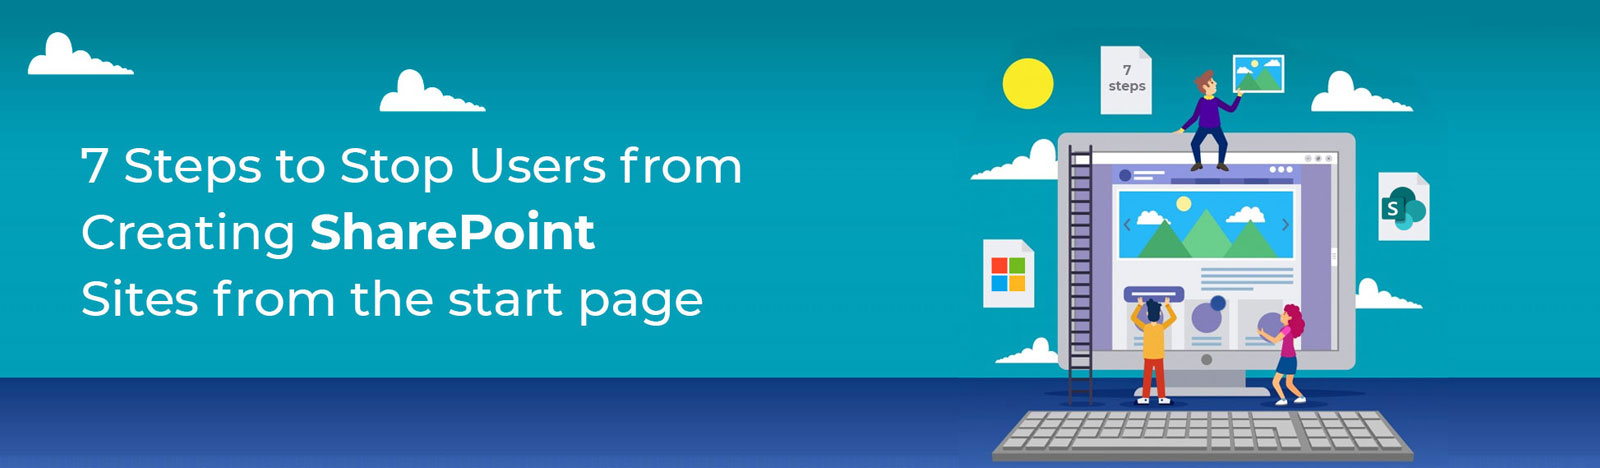 7 Steps to Restrict Users from Creating Sites from SharePoint Start Page